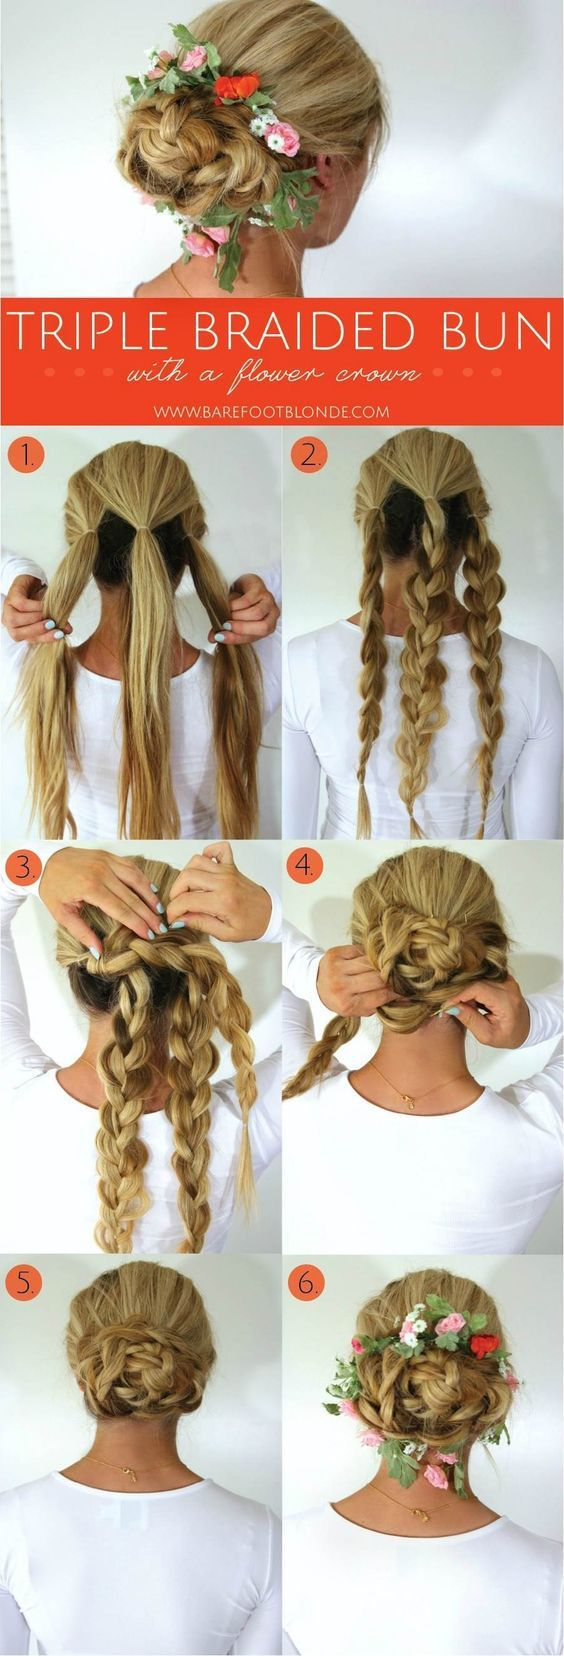 517 best cute easy hairstyles images on pinterest up dos auburn medium length hairstyles for straight hair see more triple braided bun with flower crown pmusecretfo Choice Image